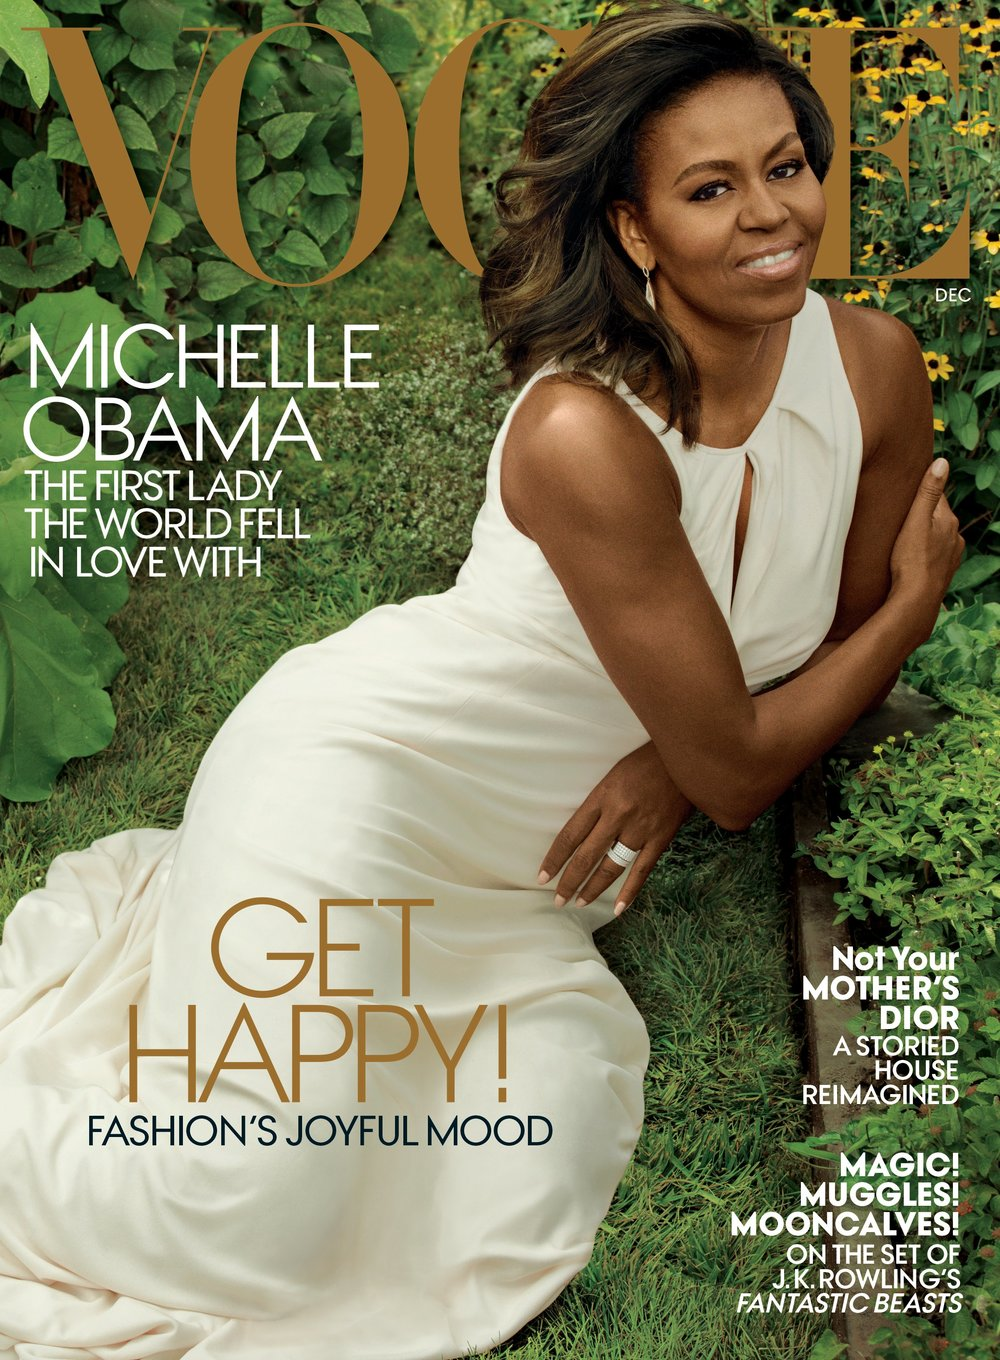 Michelle Obama on Vogue Magazine